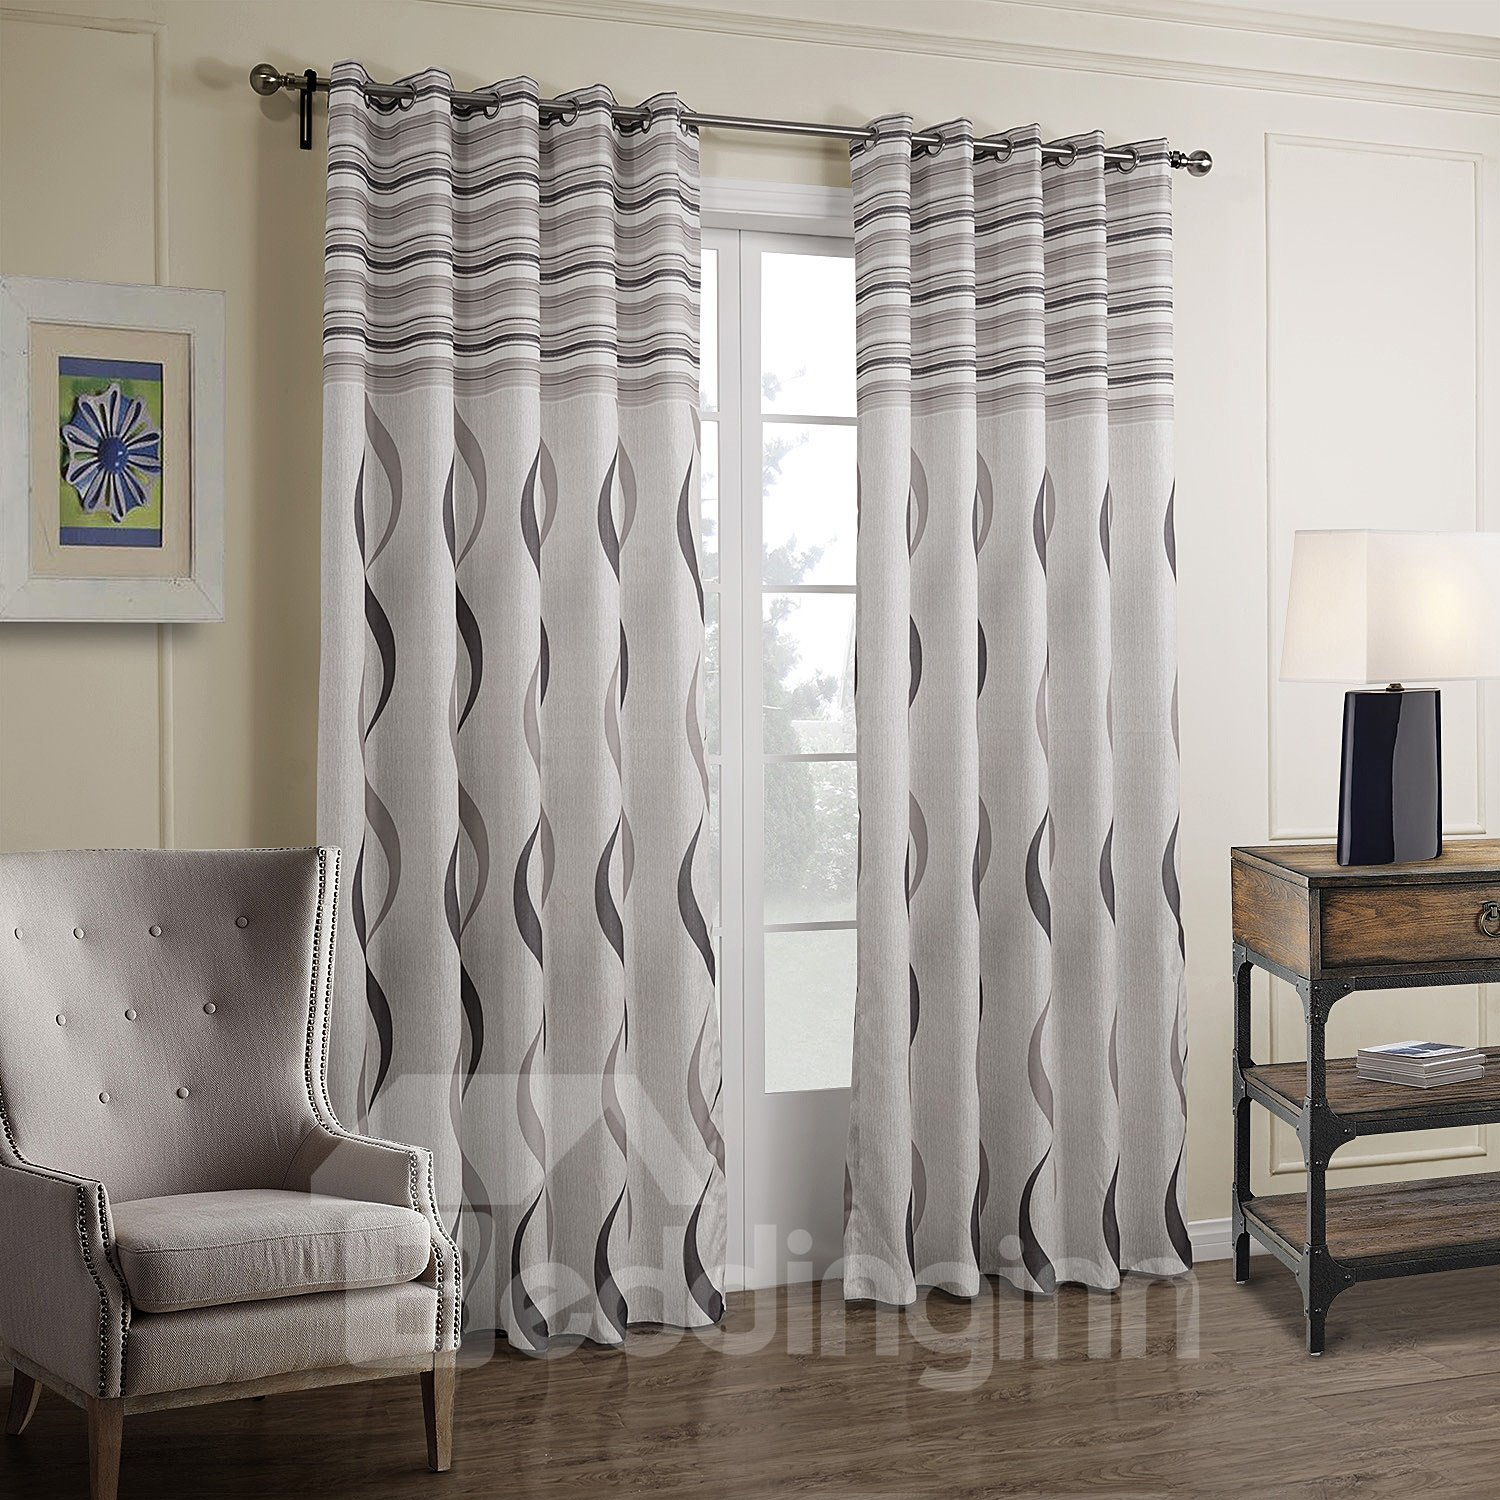 Fantastic Pretty Gray Wave Pattern Custom Curtain